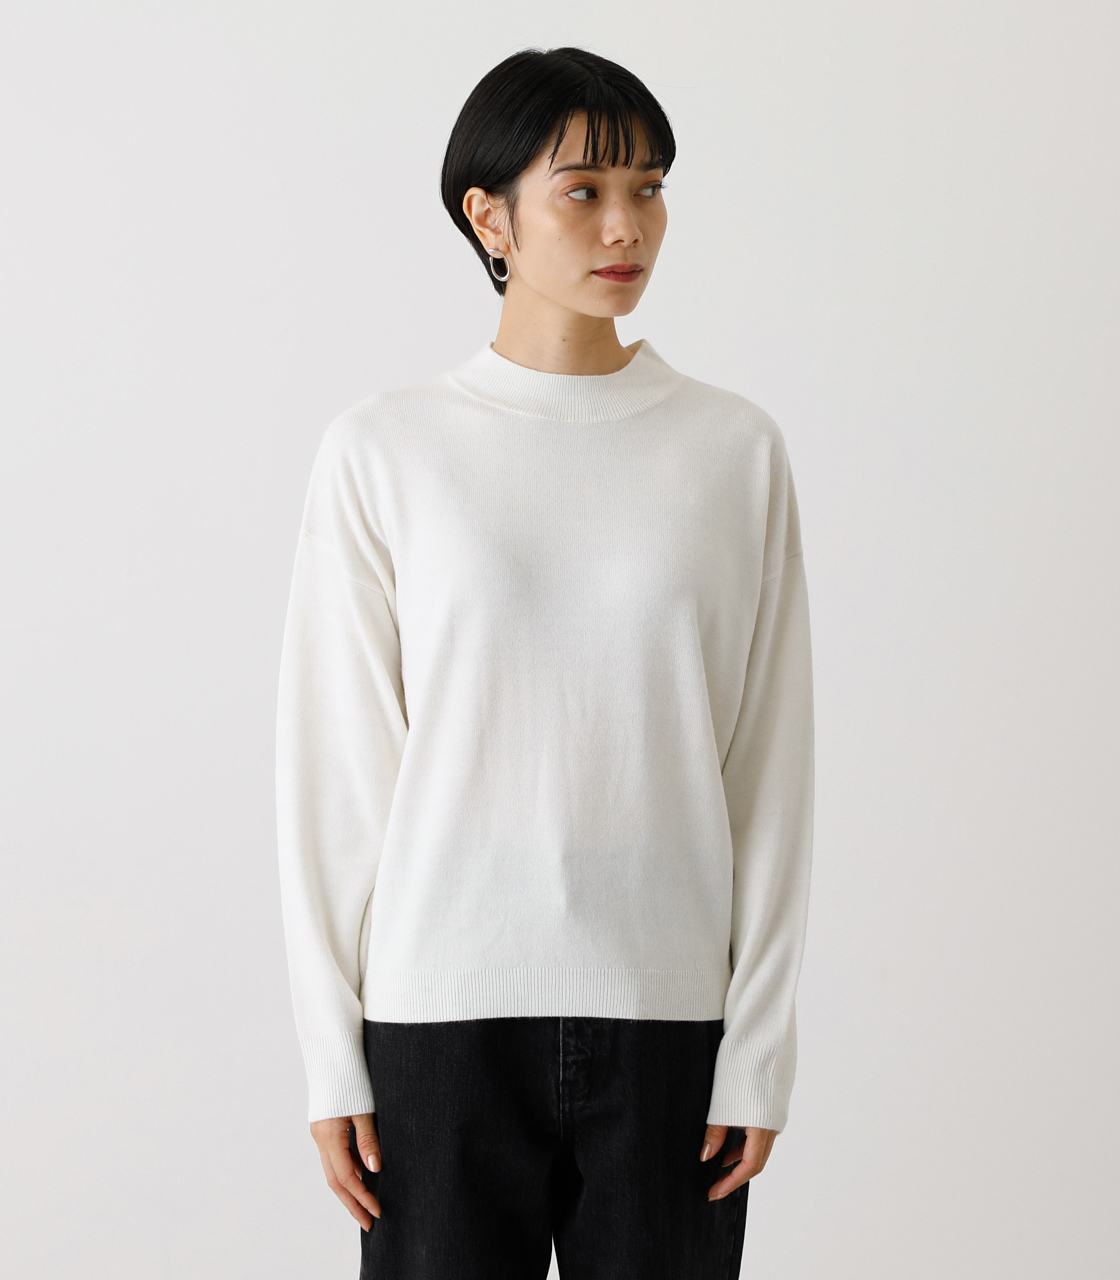 NUDIE H/N KNIT TOPS/ヌーディーハイネックニットトップス【MOOK53掲載 90022】 詳細画像 O/WHT 5